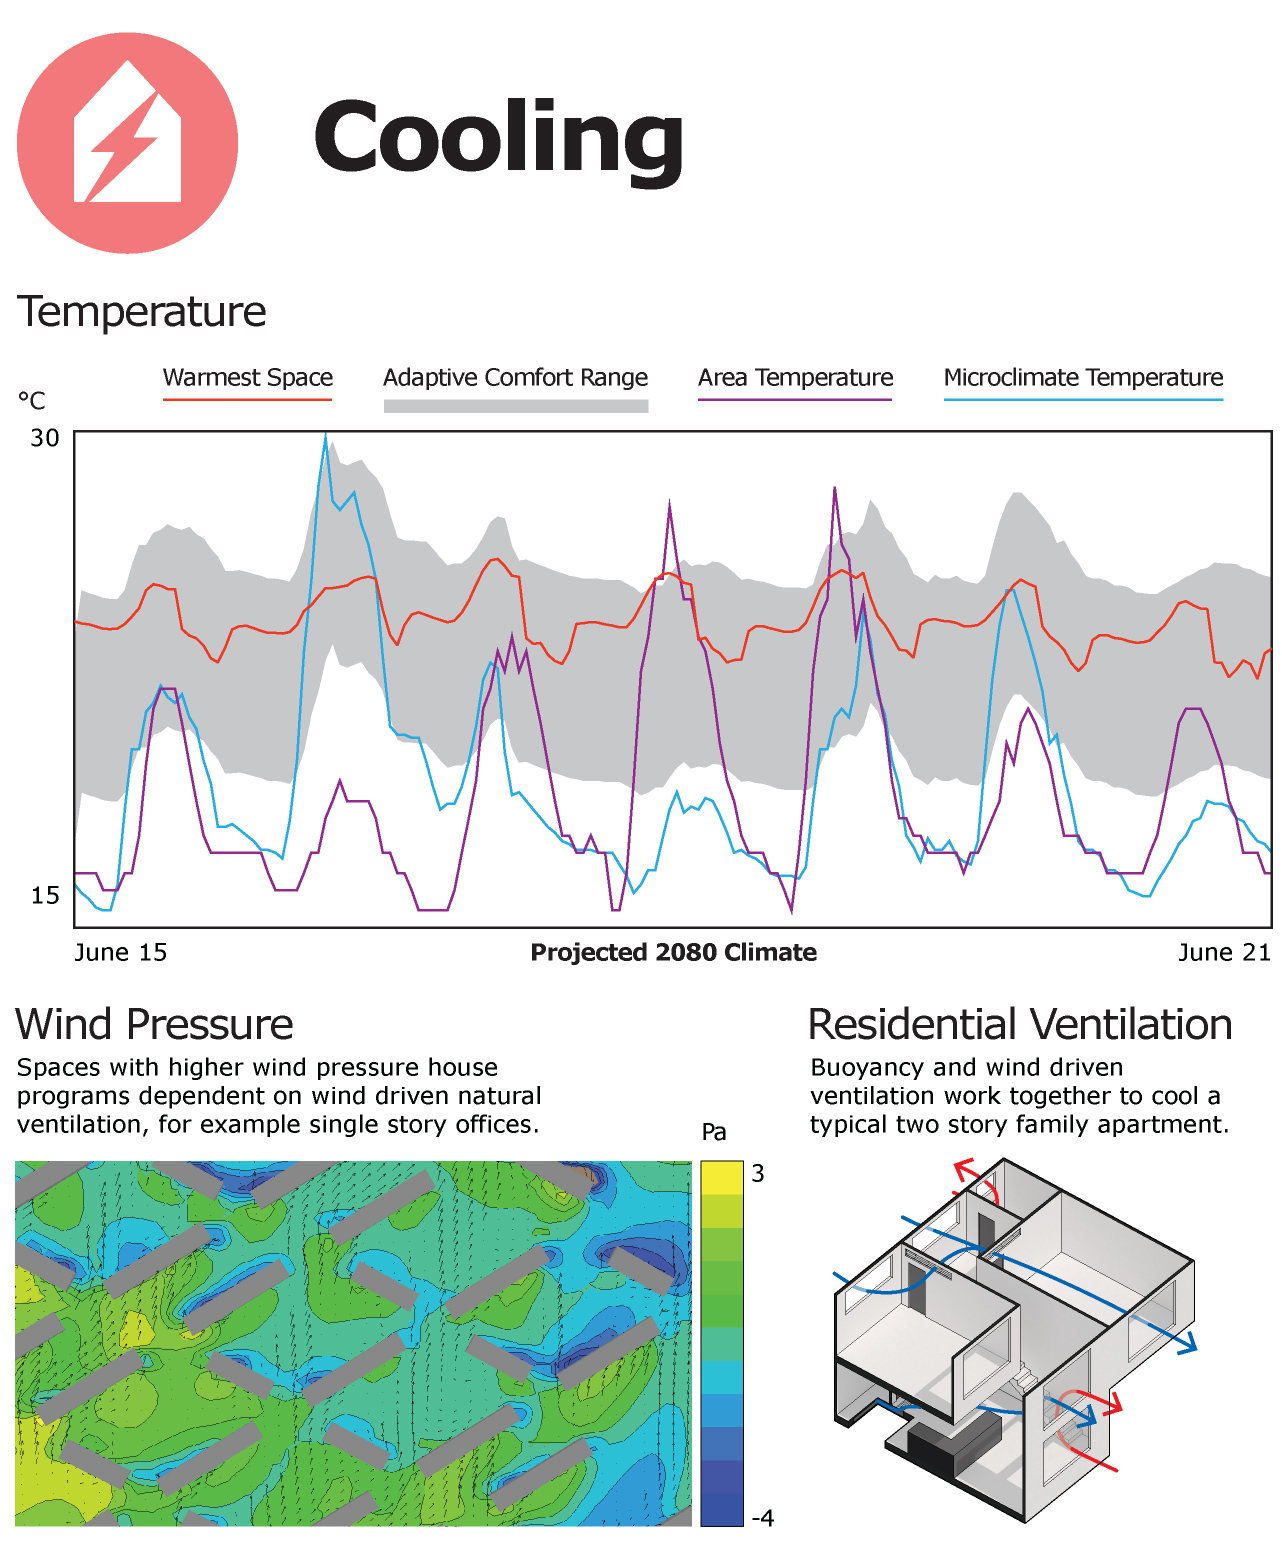 Average temperatures are projected to rise and heat waves increase over the next 50 years in San Francisco. Lofts can take advantage of buoyancy driven ventilation to keep the buildings cool without air conditioning.